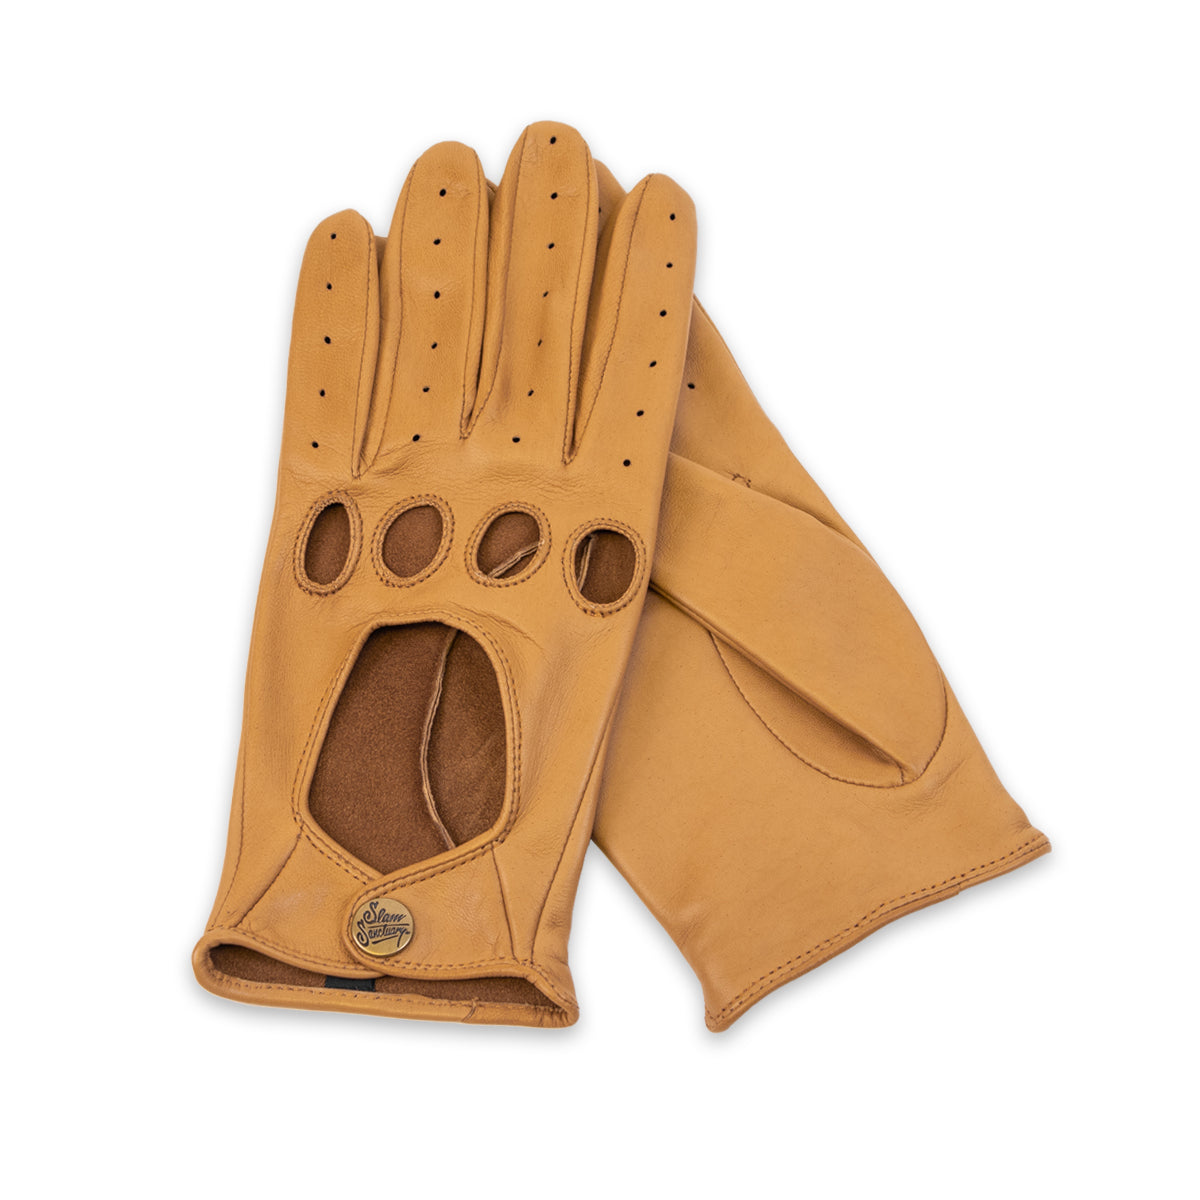 Nappa Leather Driving Gloves - TAN